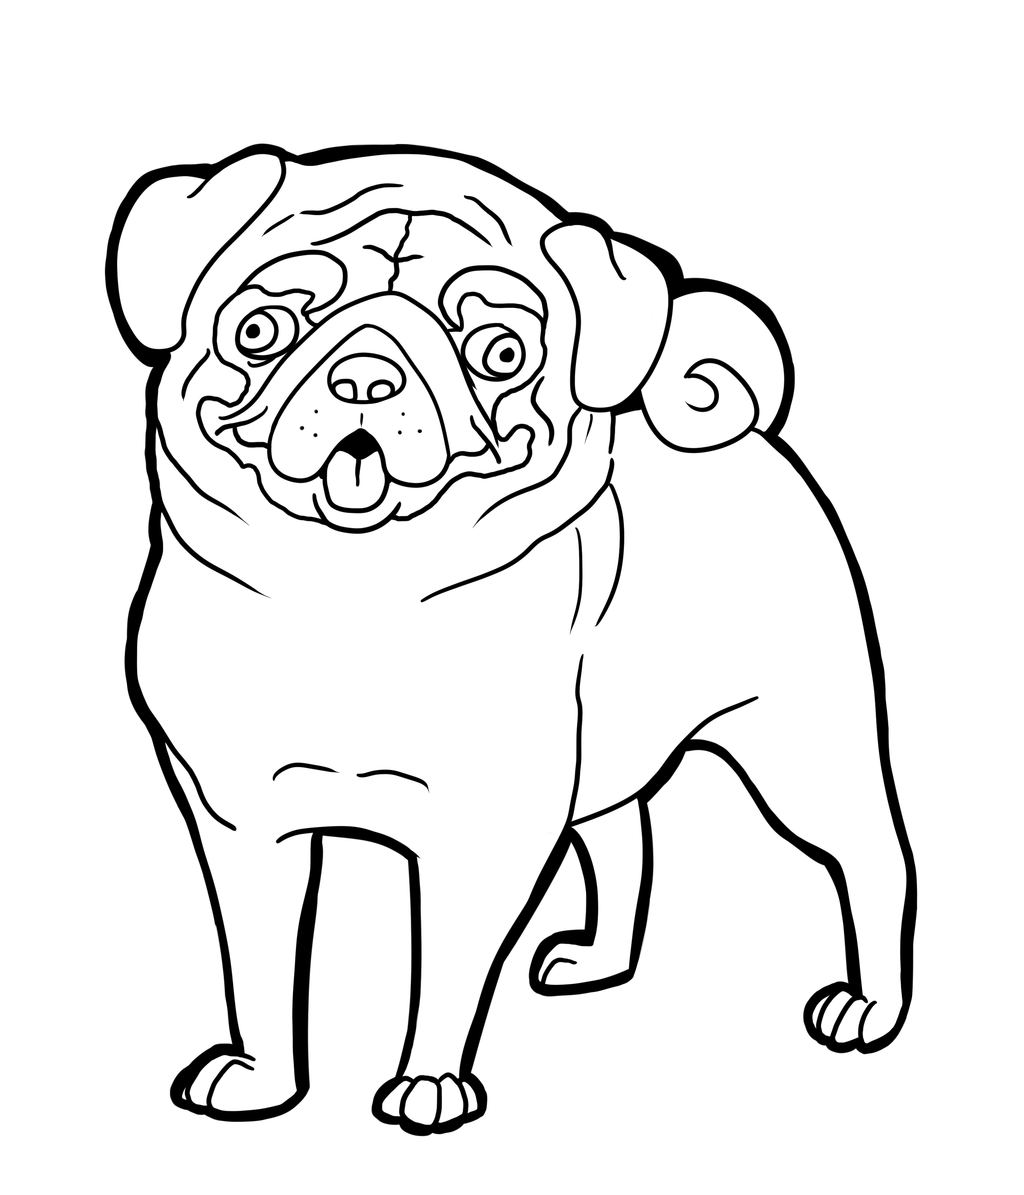 baby dog dog coloring pages stork baby and dogs coloring and pages wecoloringpagecom pages baby dog dog coloring